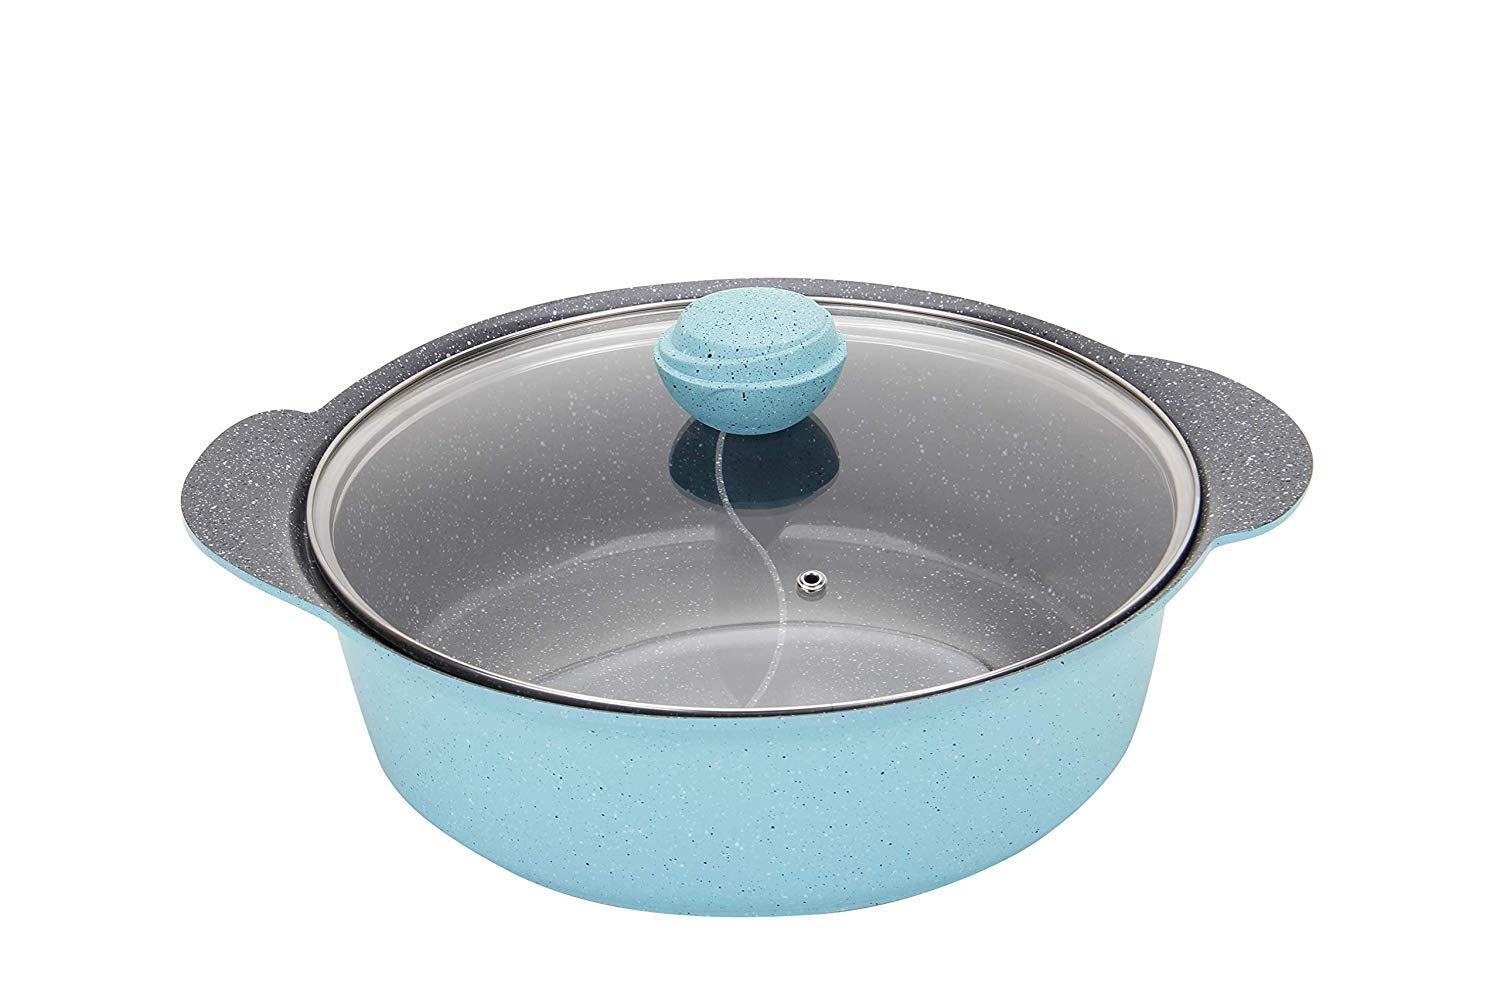 ZHOUYA Ceramic Type Hot Pot Capacity Soup Pot,Thickening Separation Multi-Function Non-Stick Pan,Seamless Design,Professional Kitchenware for The Home (Blue)